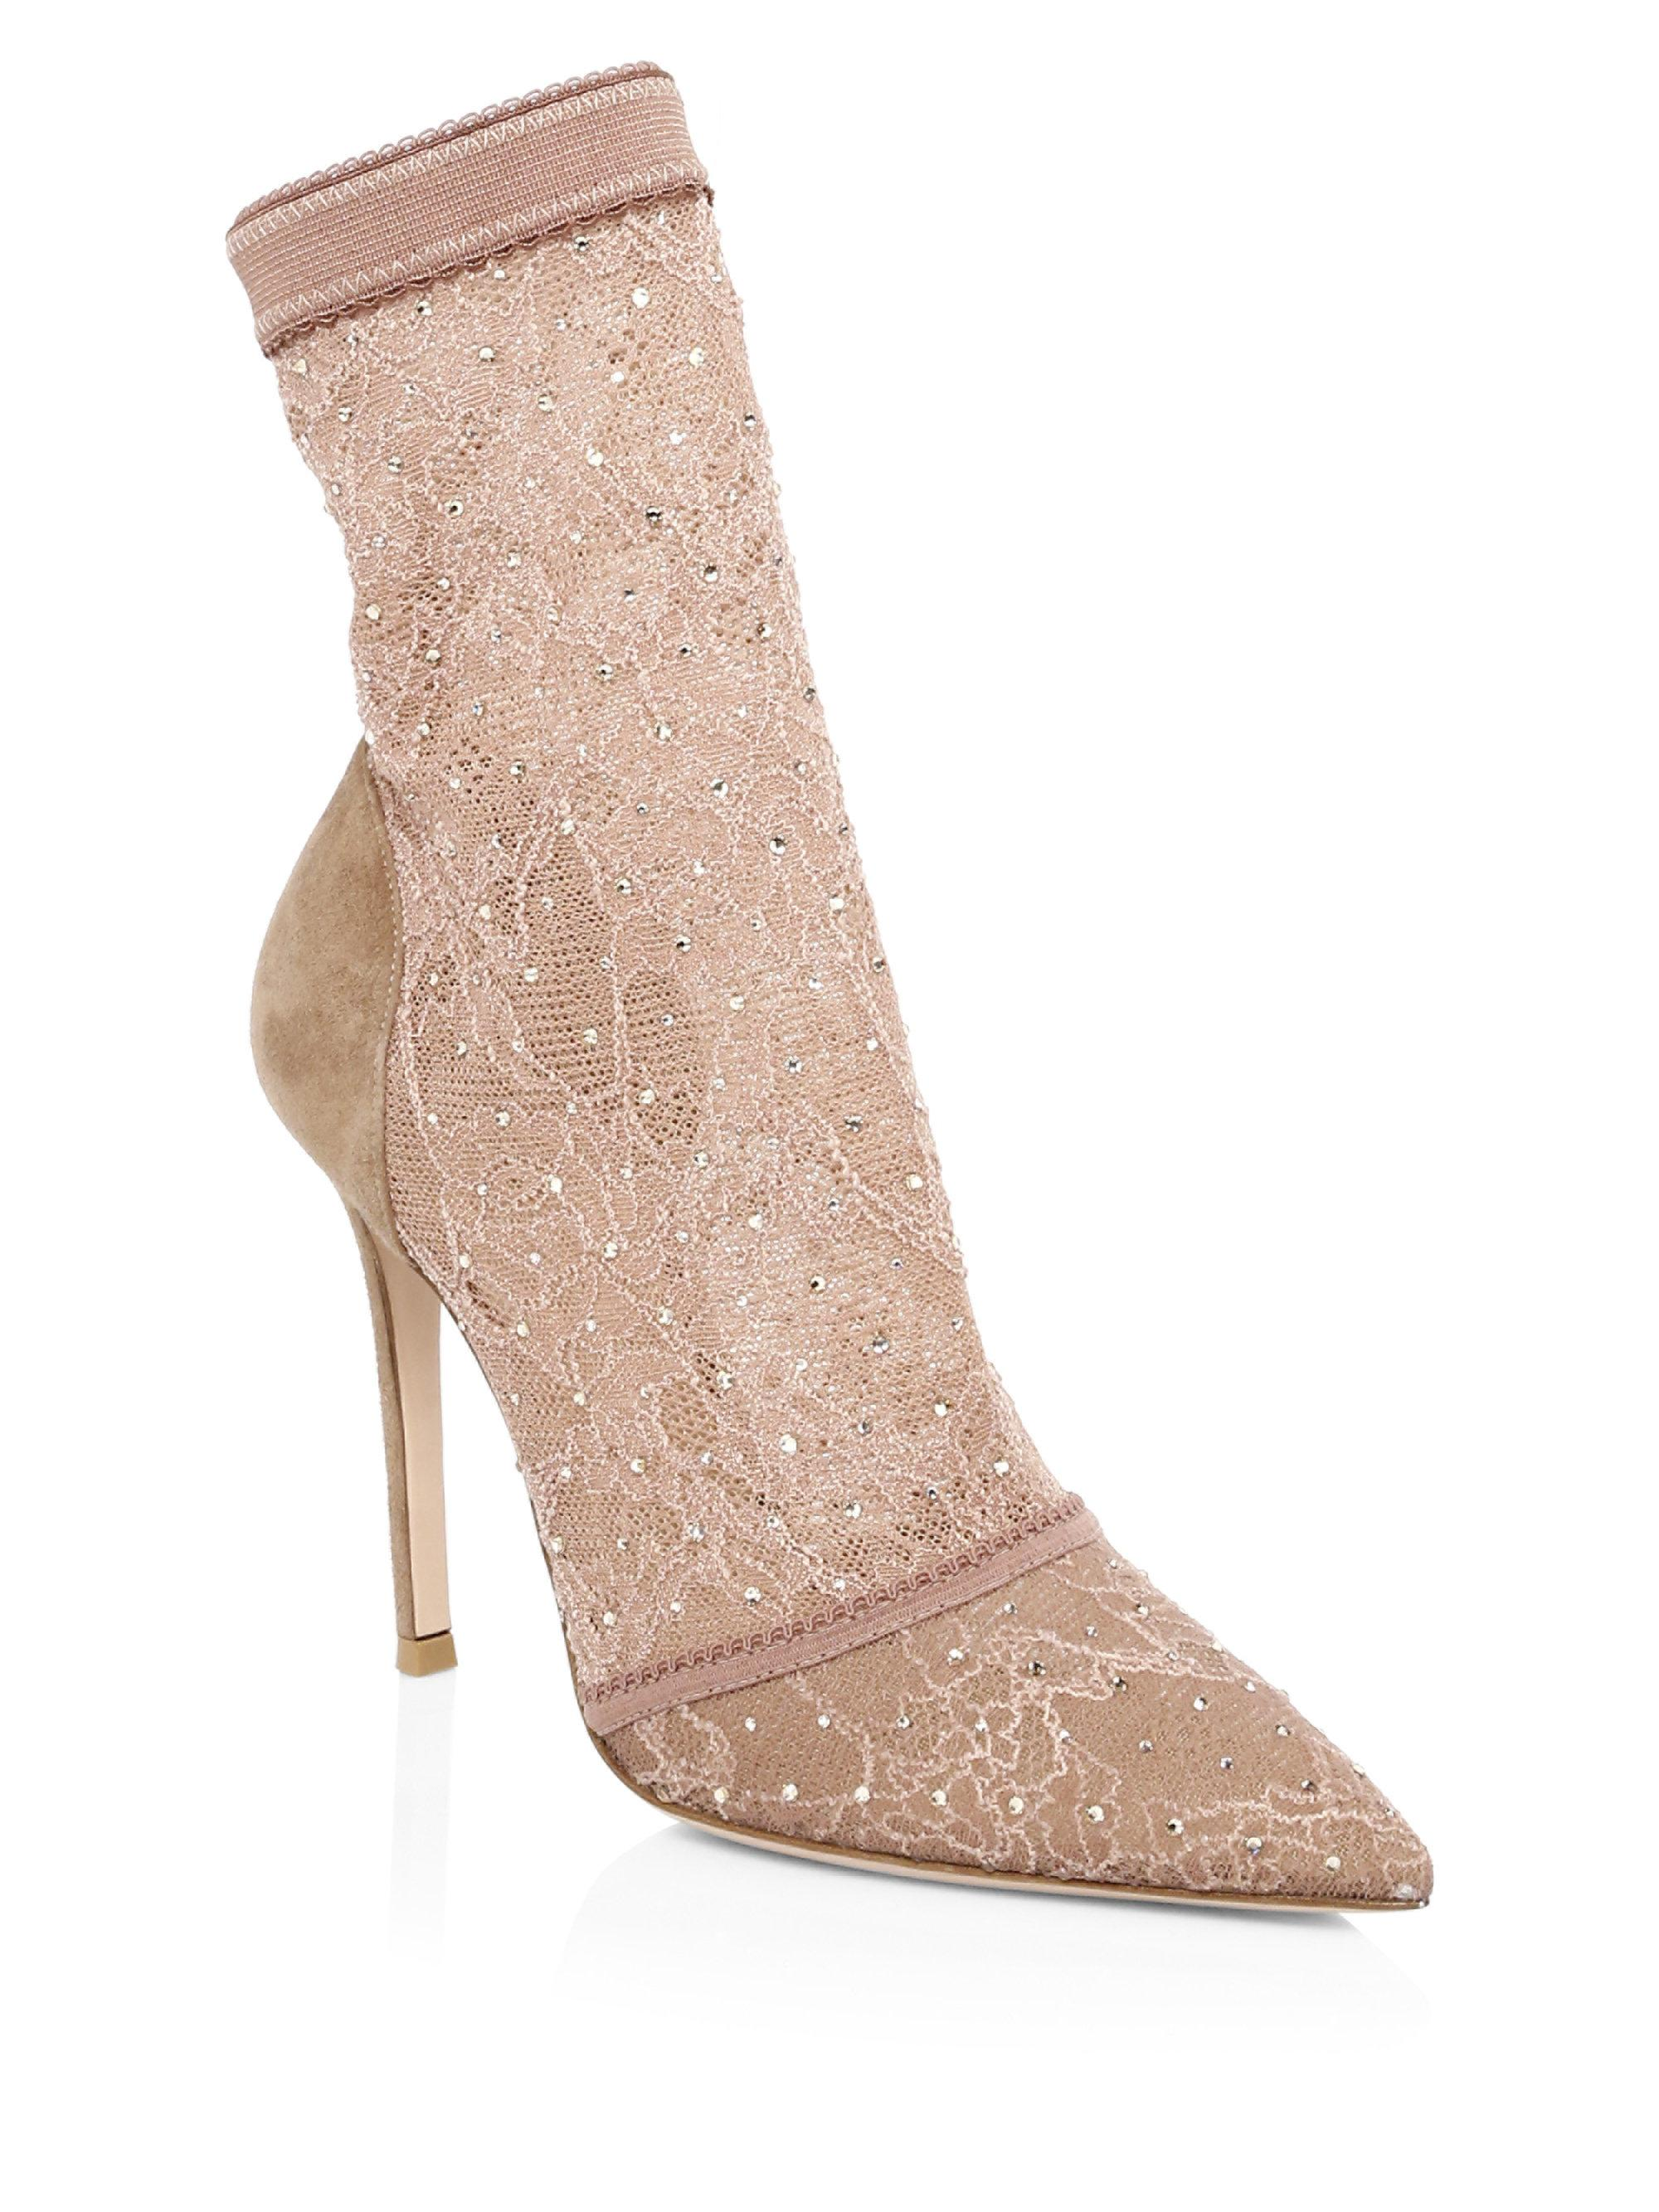 Gianvito Rossi Classic Lace Boots CUhWyjrf